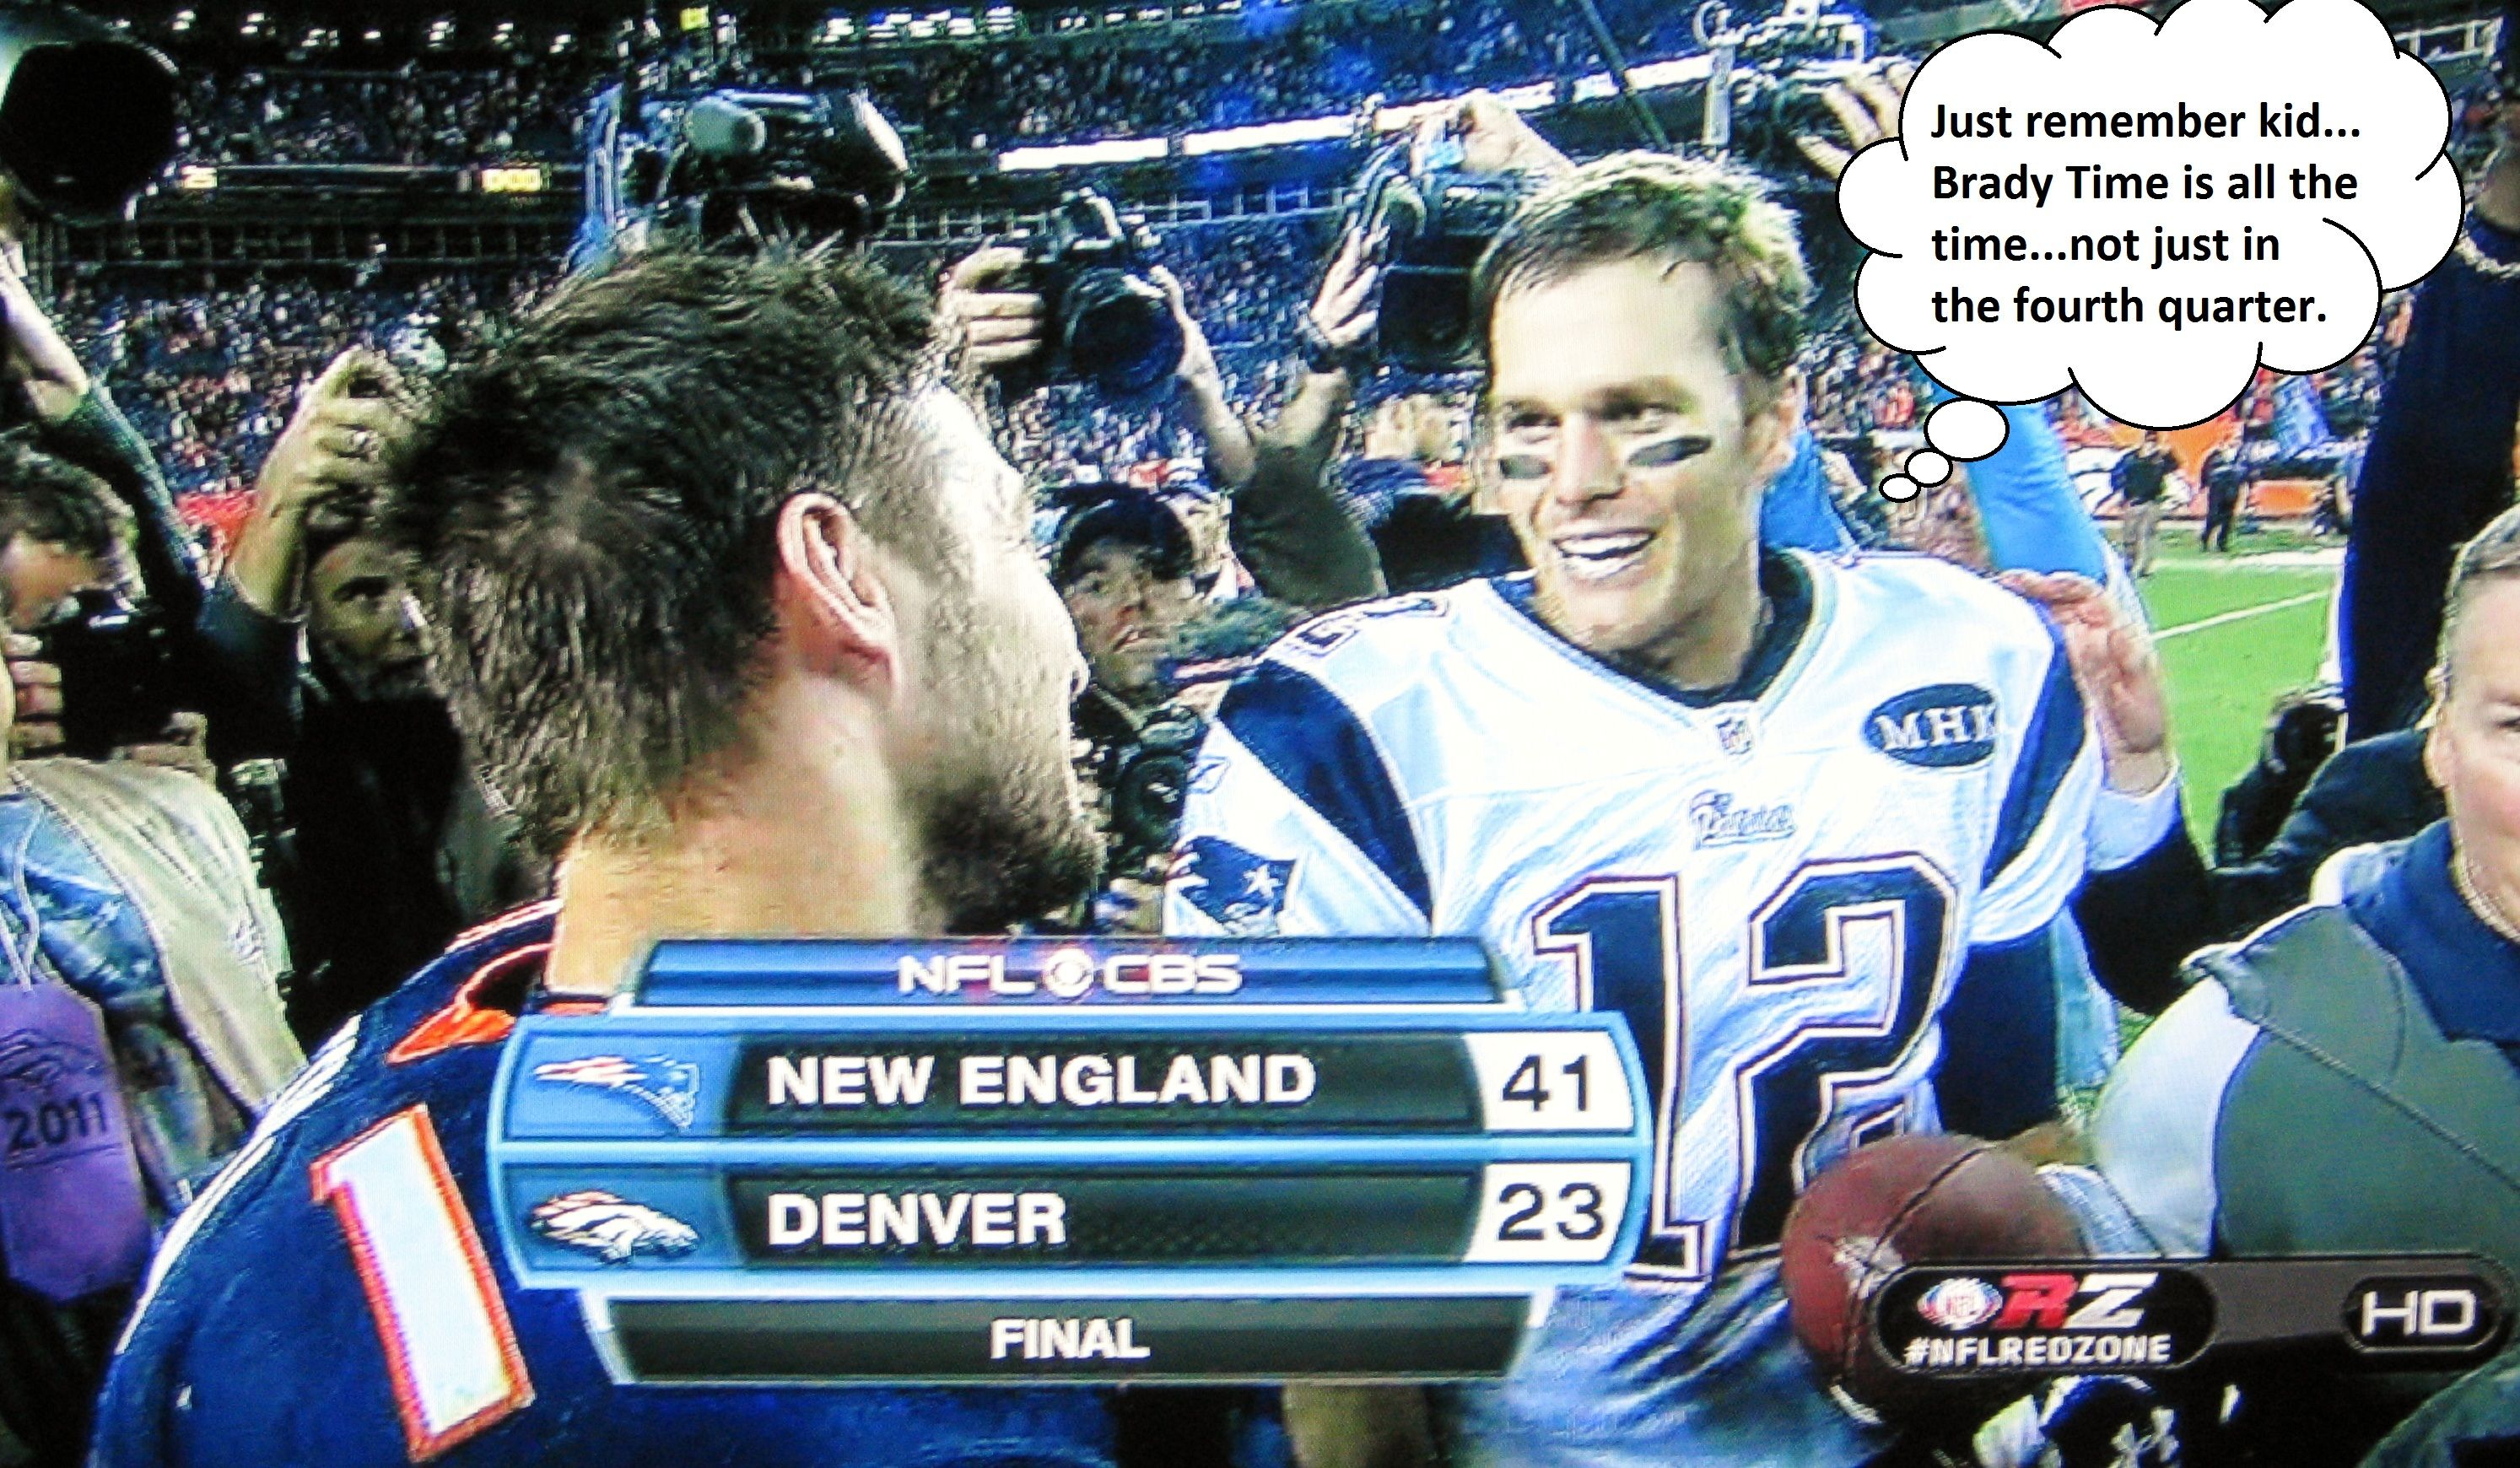 Tom Brady Pats Rock Tim Tebow S Casbah Win Afc East Tim Tebow Tom Brady New England Patriots